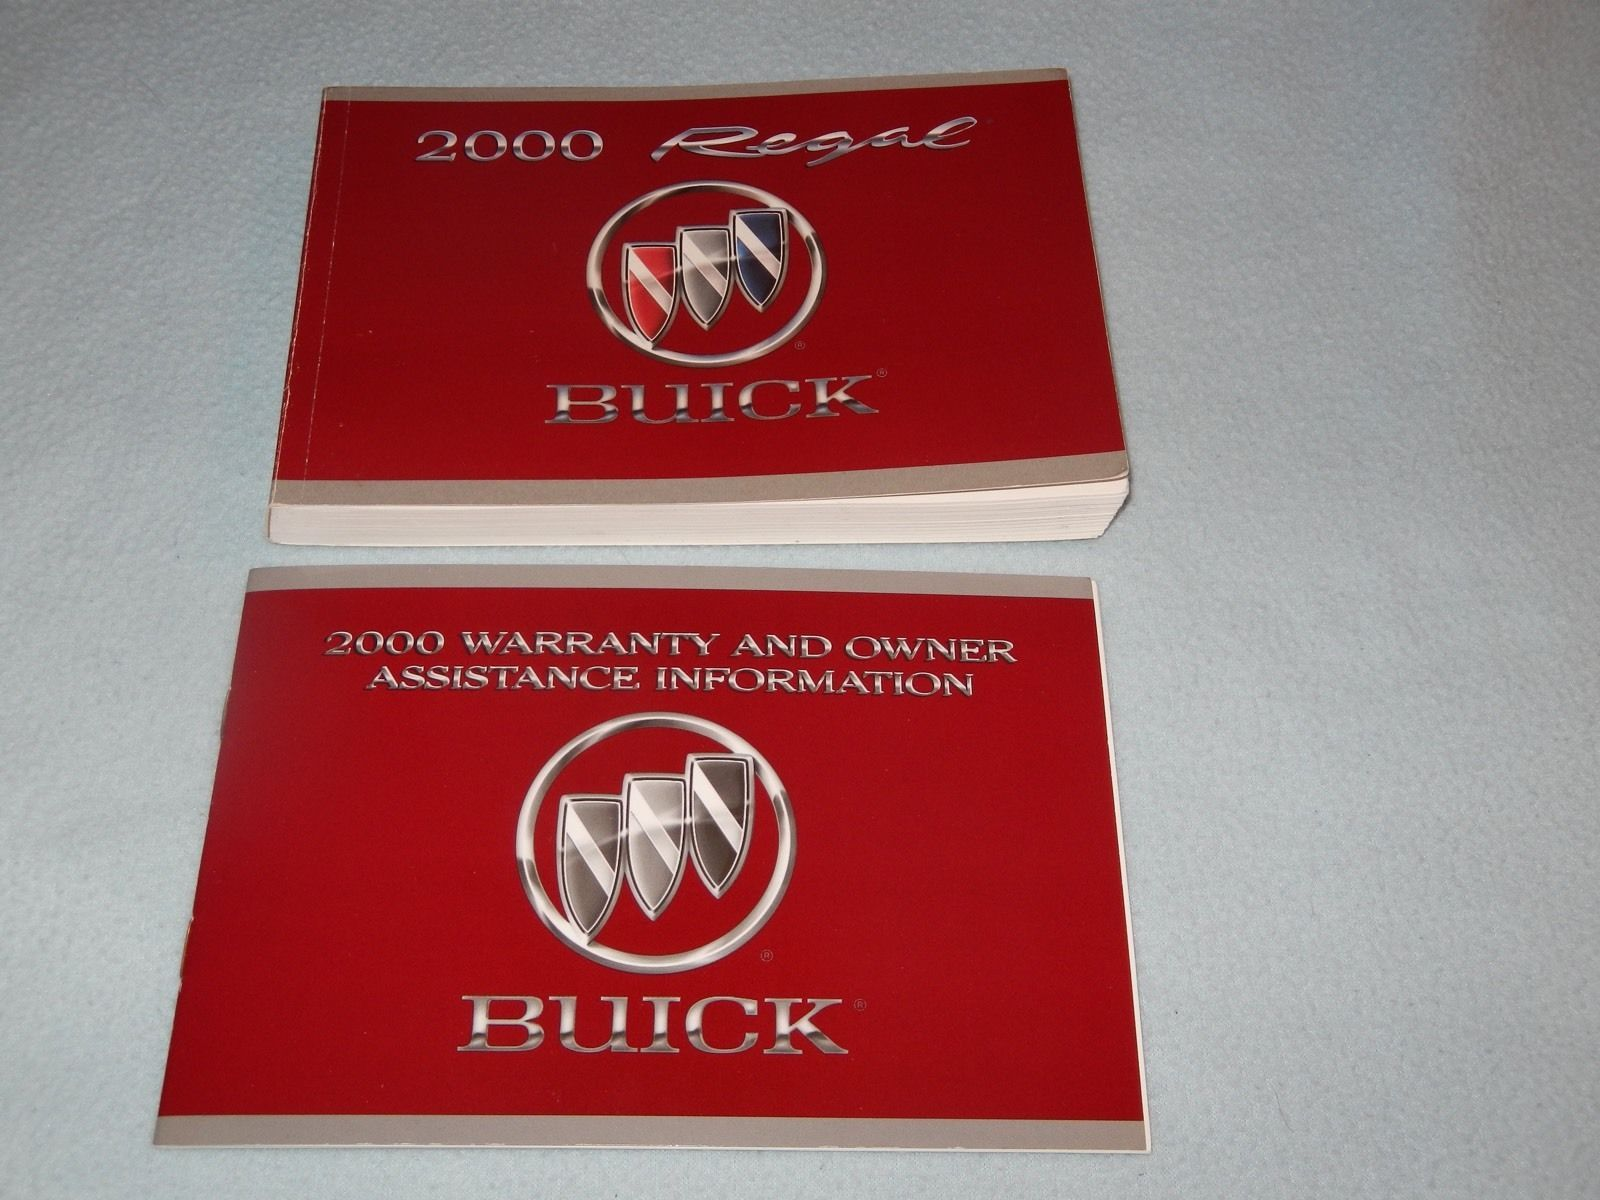 2000 buick regal owners manual with binder and similar items rh bonanza com 2000 buick regal repair manual 2002 Buick Regal